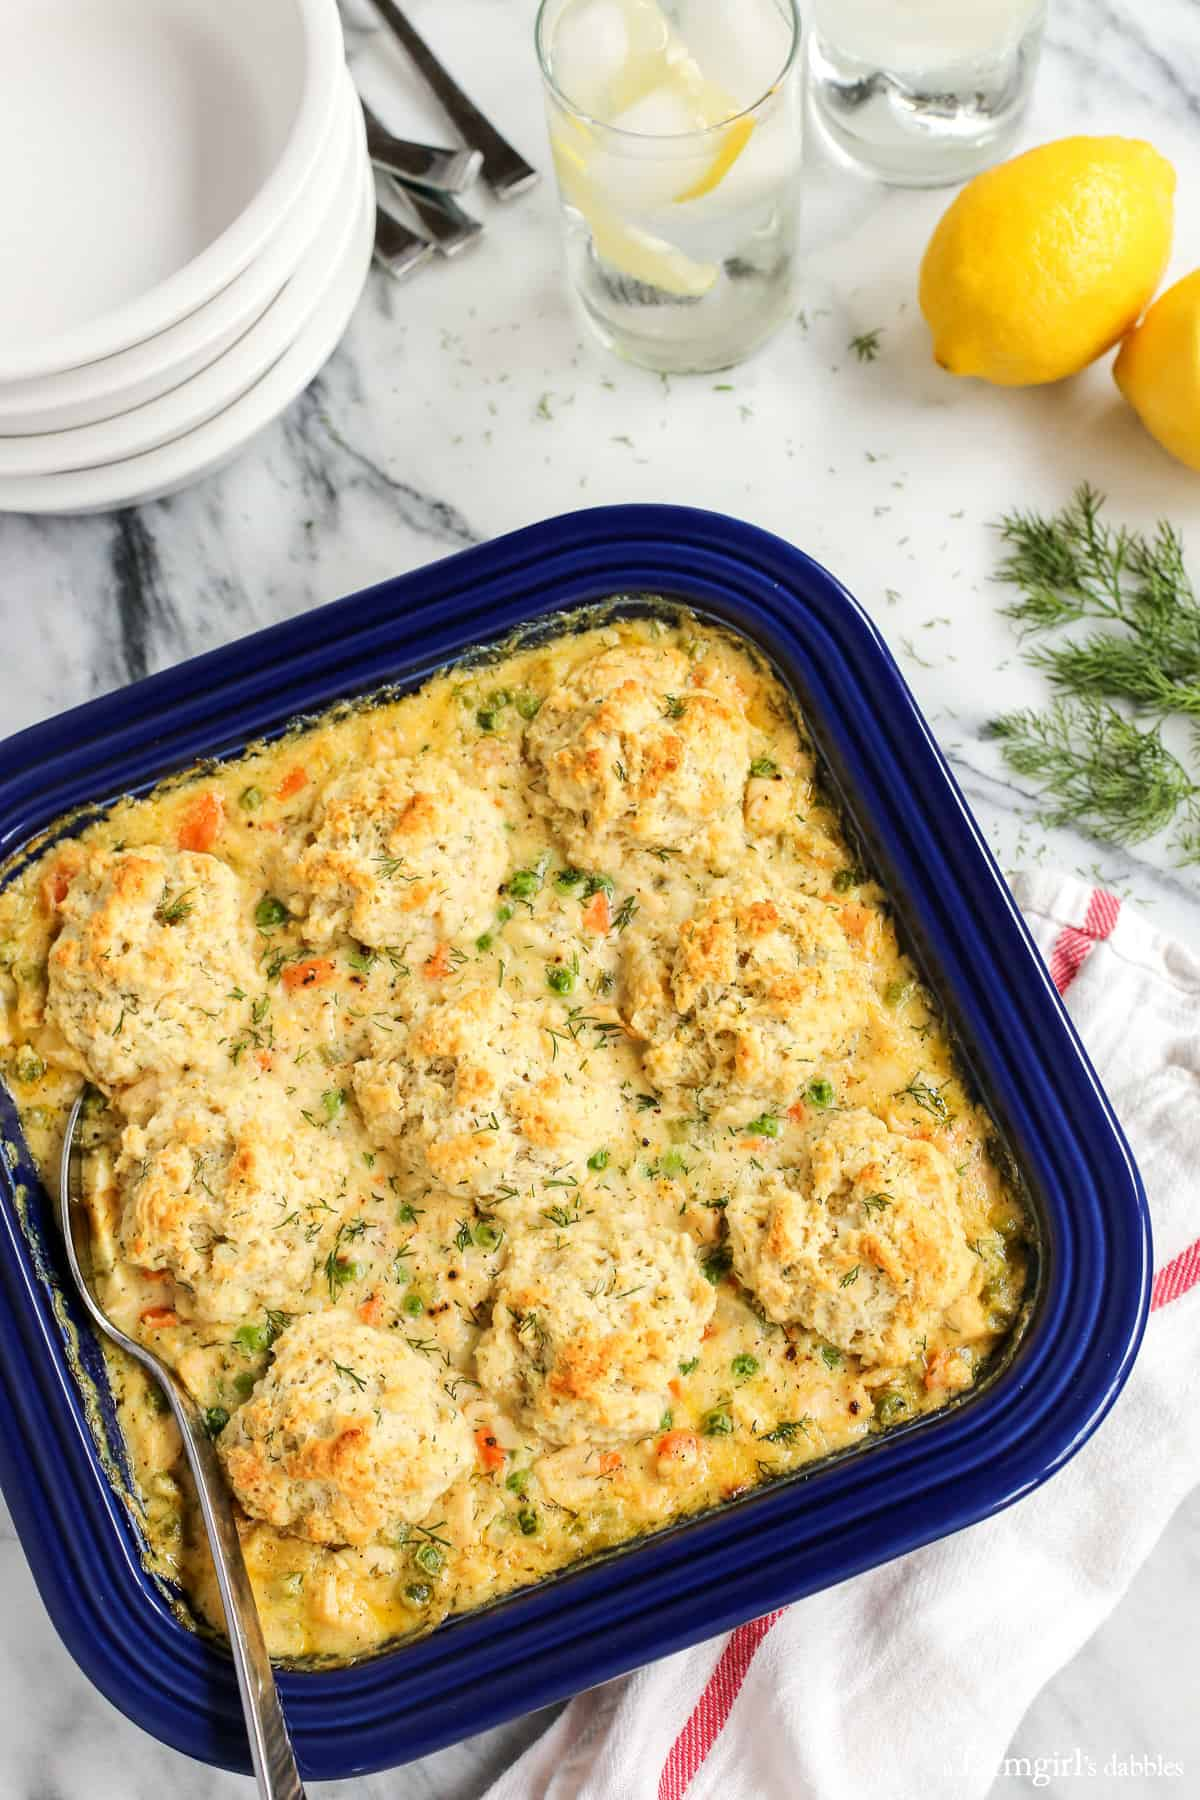 Turkey and Biscuits Casserole with Lemon and Dill from afarmgirlsdabbles.com